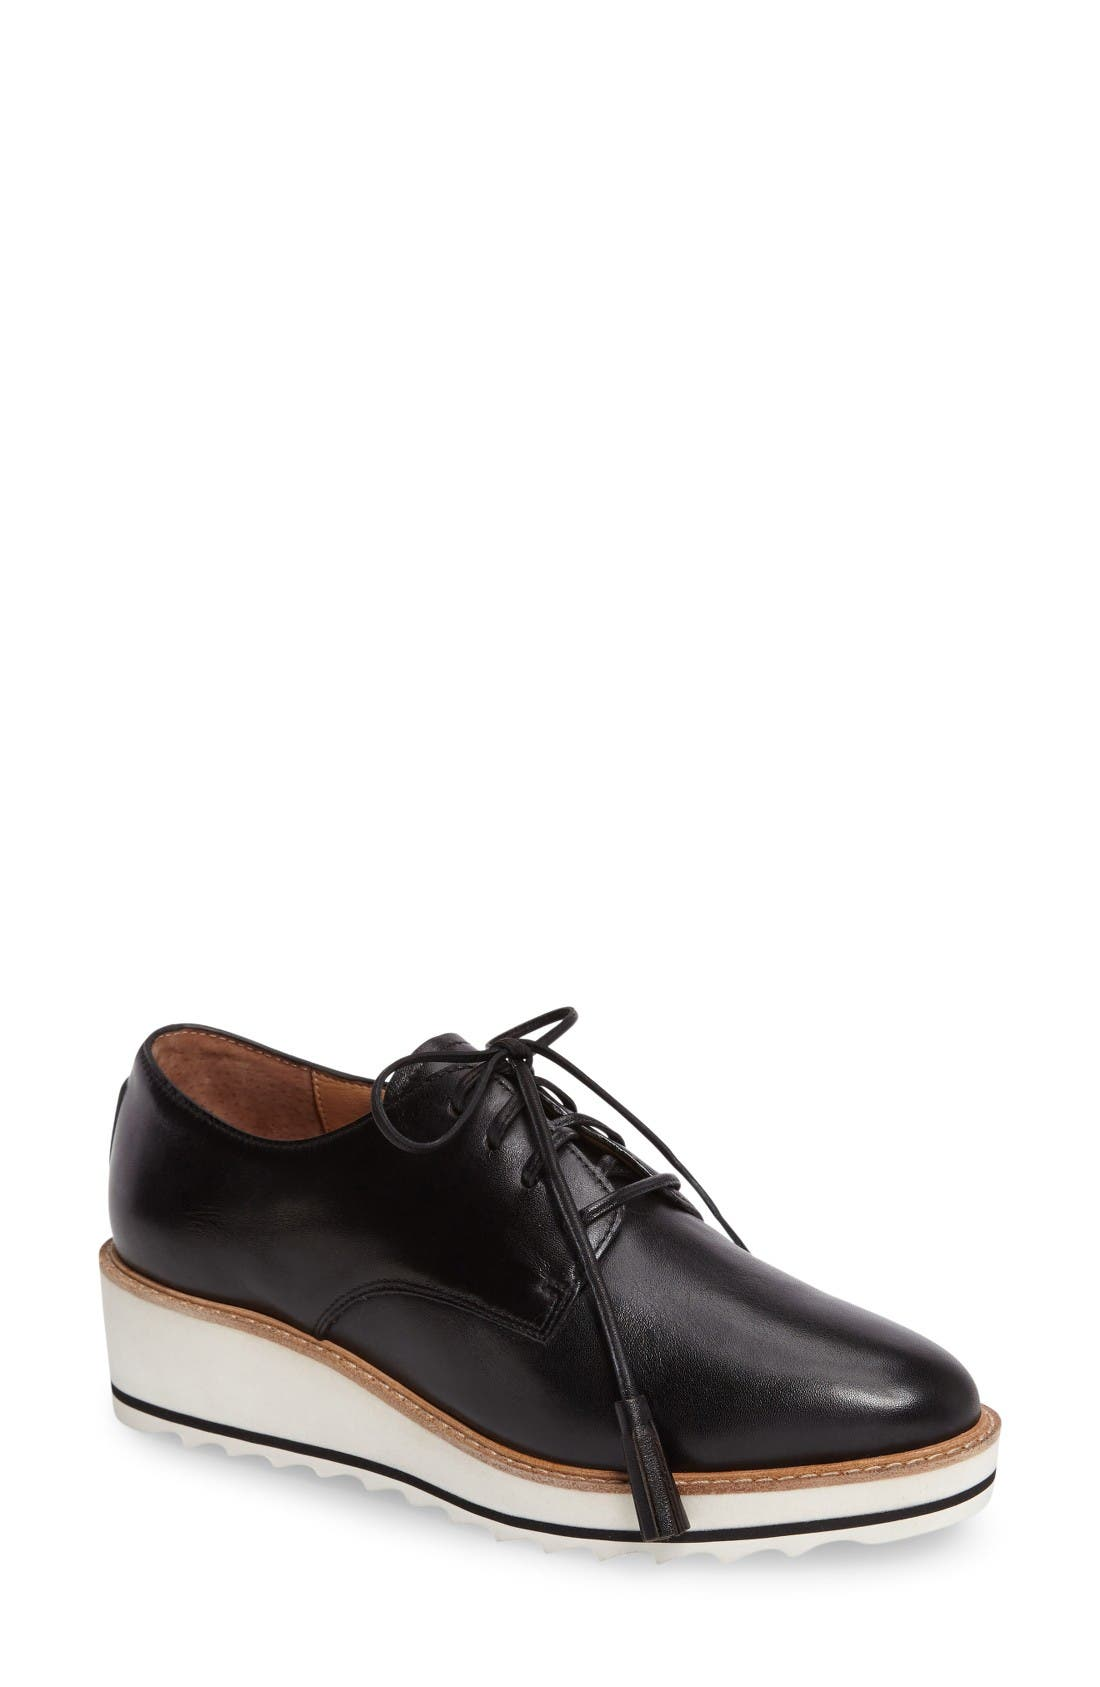 Alternate Image 1 Selected - Linea Paolo Marlo Platform Oxford (Women)